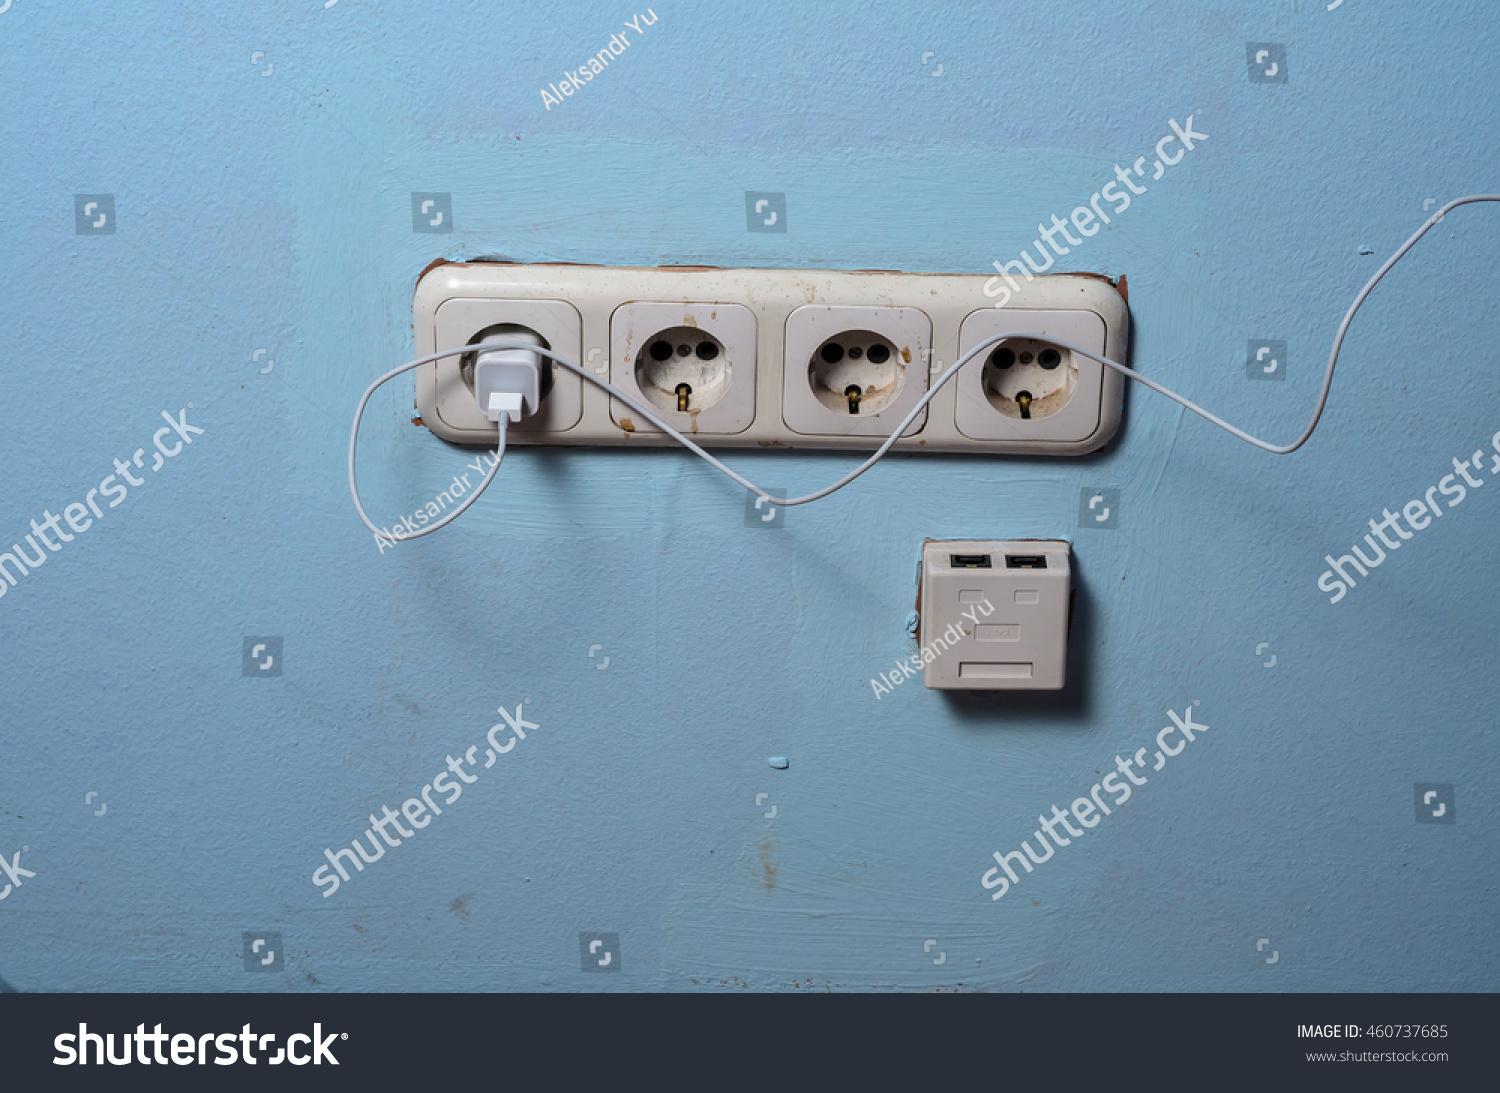 Electric White Plug White Plastic Sockets Stock Photo (Edit Now ...